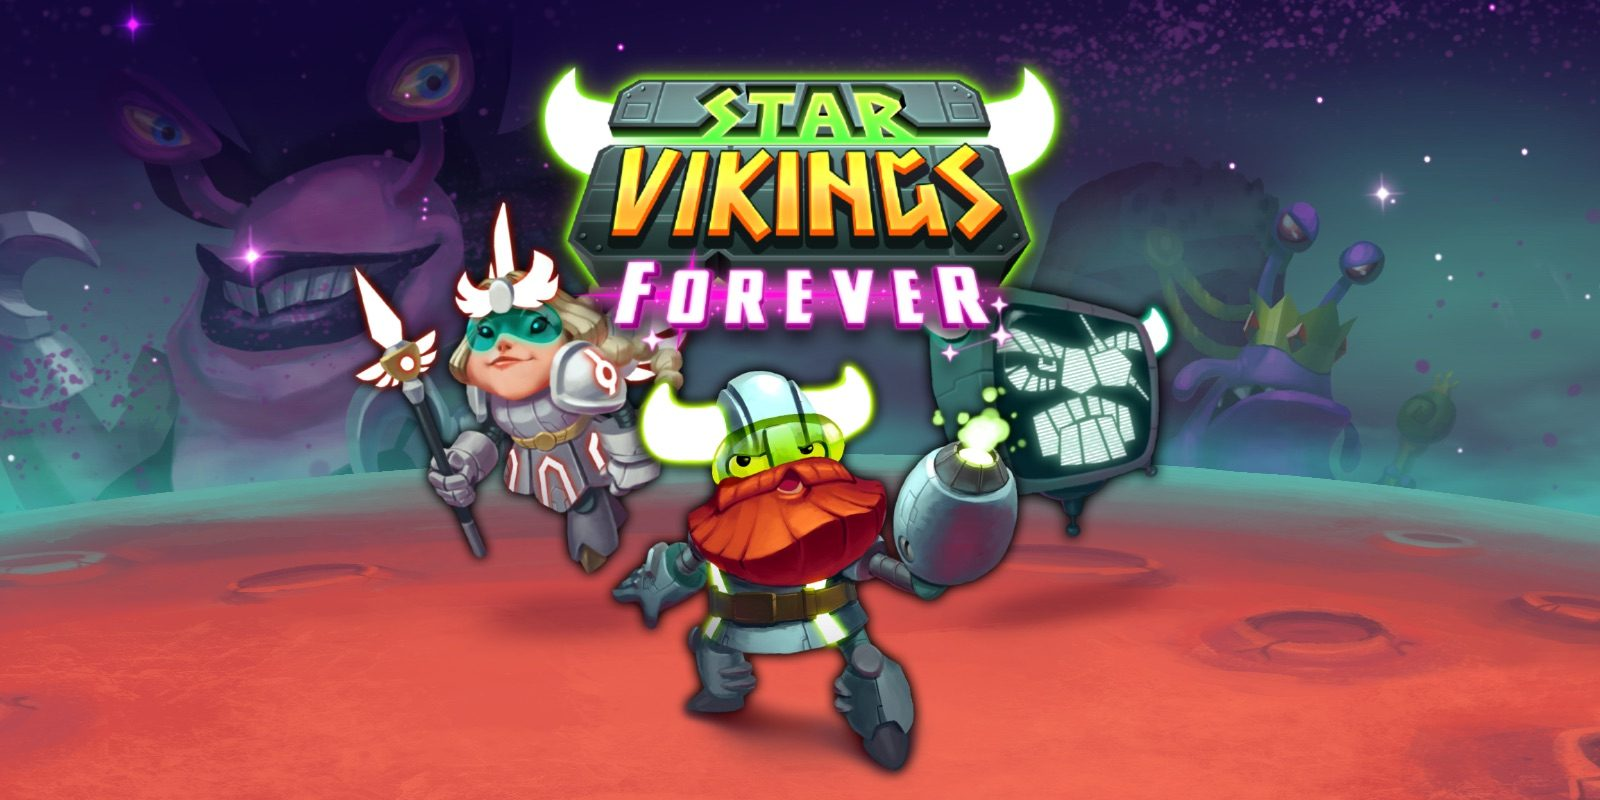 Today's Android app deals + freebies: Star Vikings, more